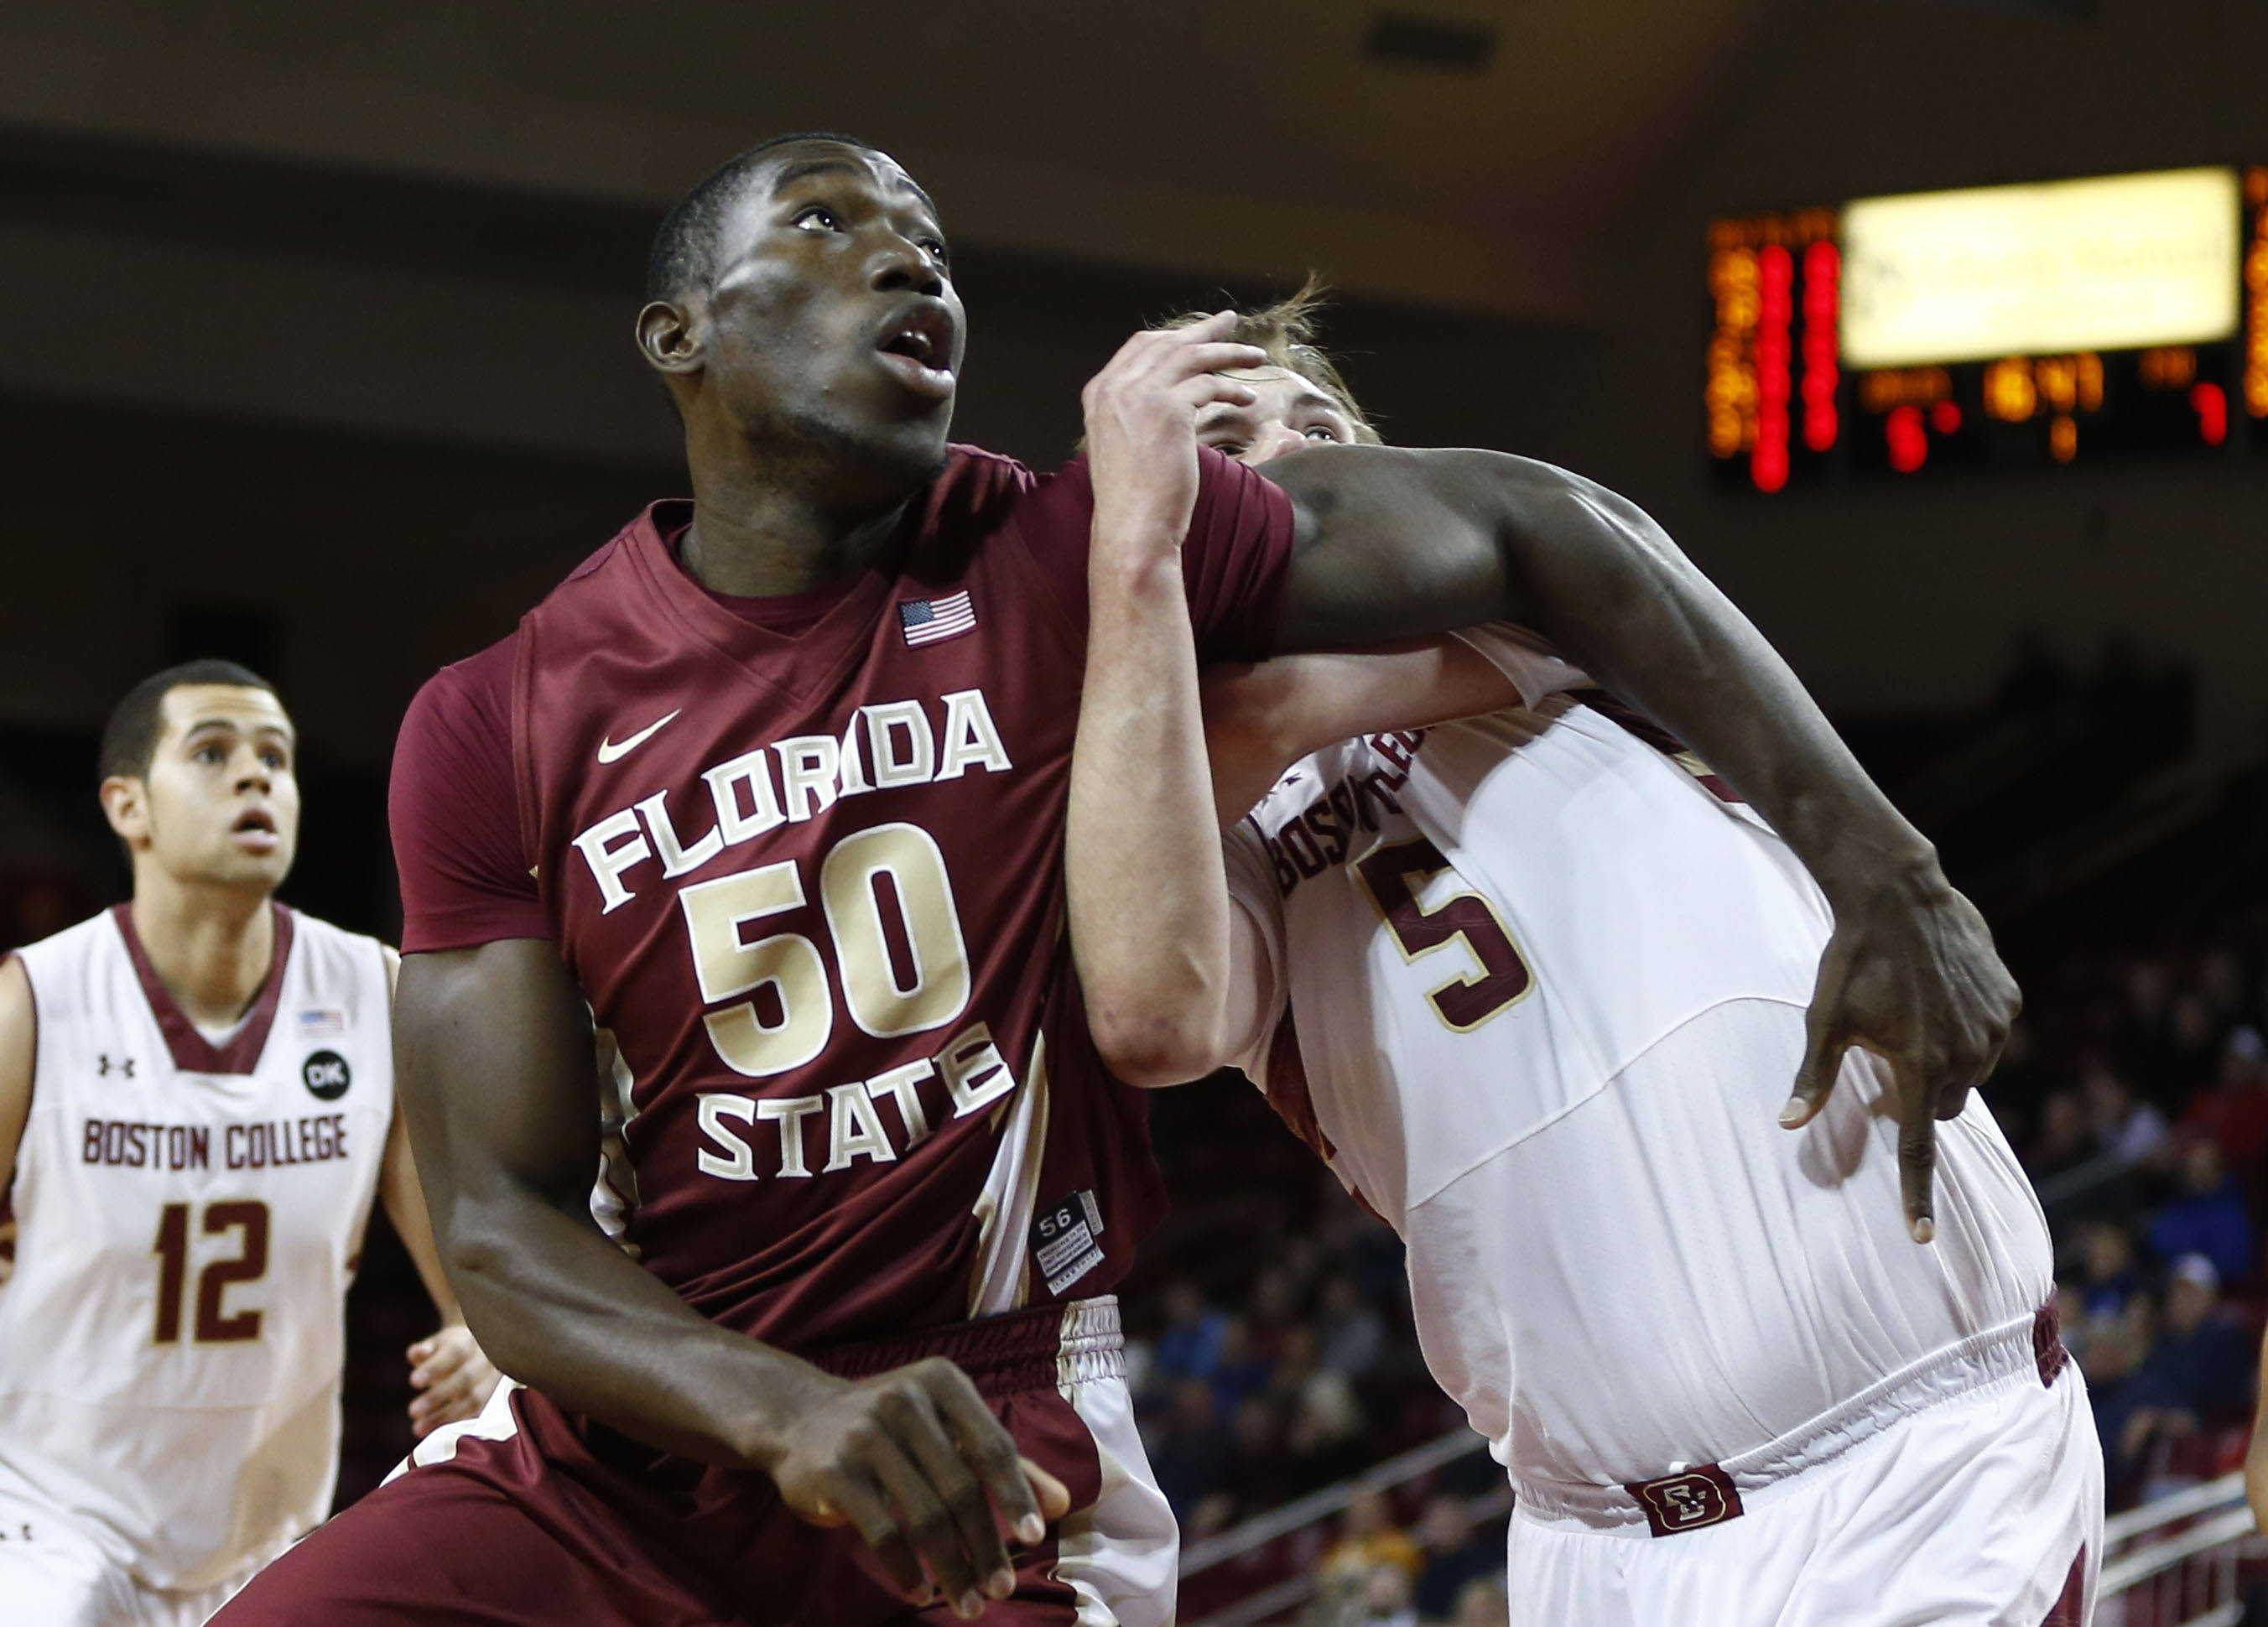 Mar 4, 2014; Chestnut Hill, MA, USA; Seminoles center Michael Ojo (50) blocks out against Boston College Eagles center KC Caudill (5) during the first half. Mark L. Baer-USA TODAY Sports